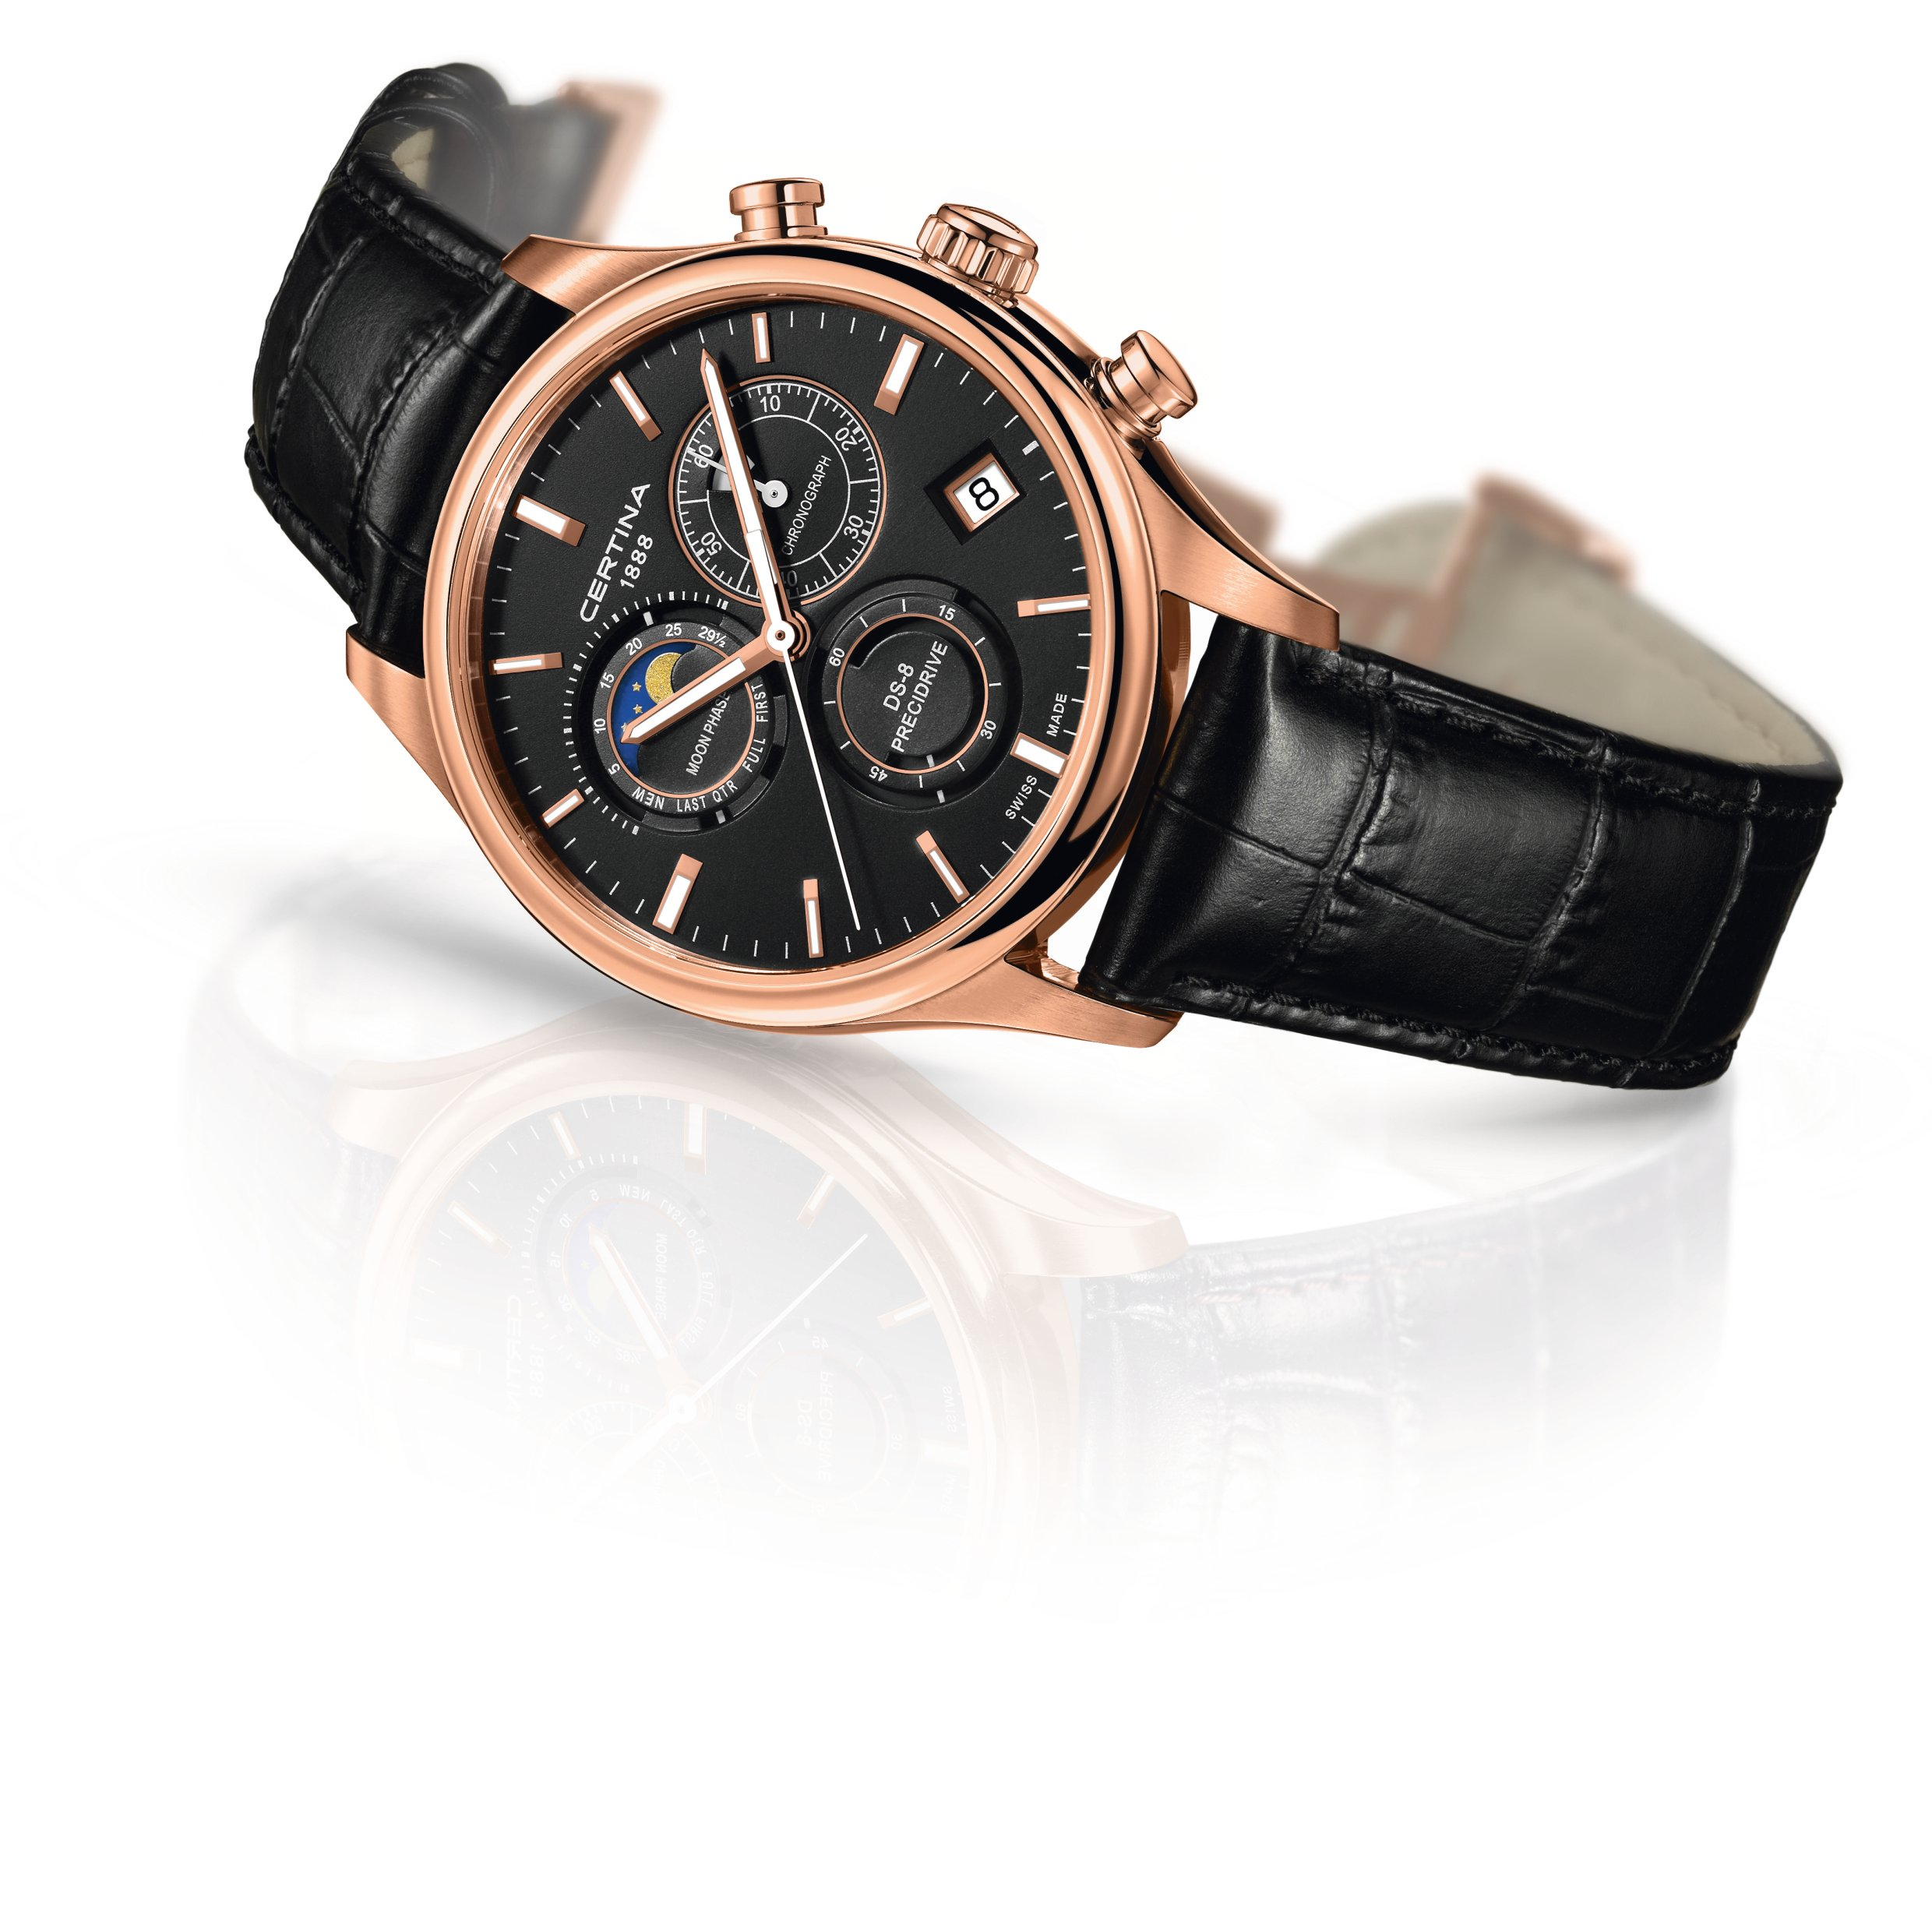 Certina DS-8 Chronograph Mondphase